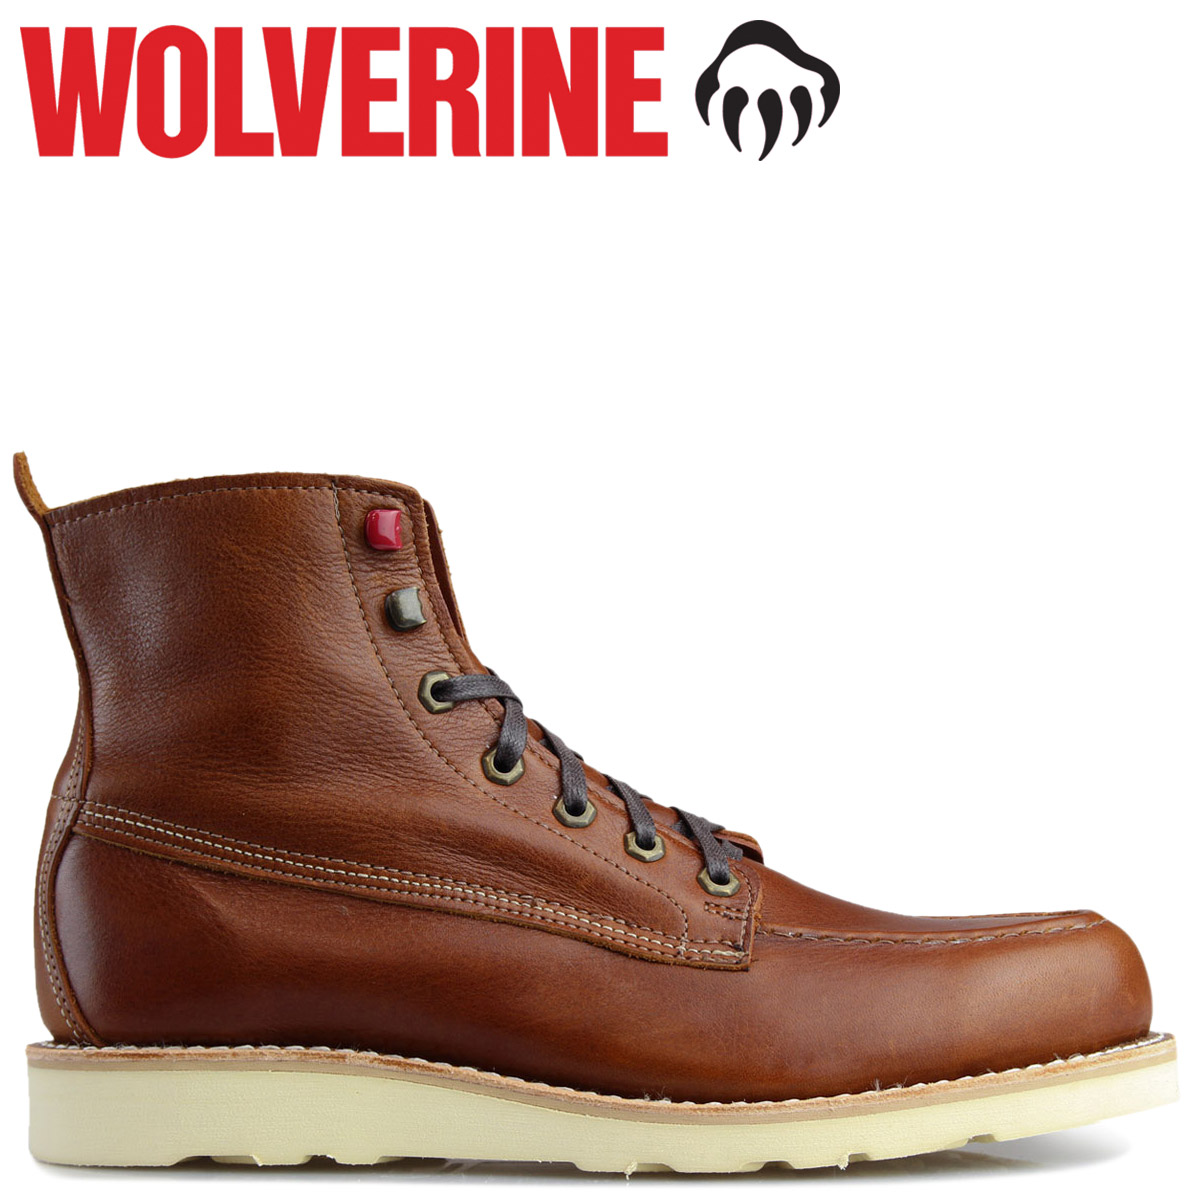 e8e71a7ab8e WOLVERINE ブーツウルヴァリンメンズ LOUIS WEDGE BOOT D Wise W40411 brown work boots